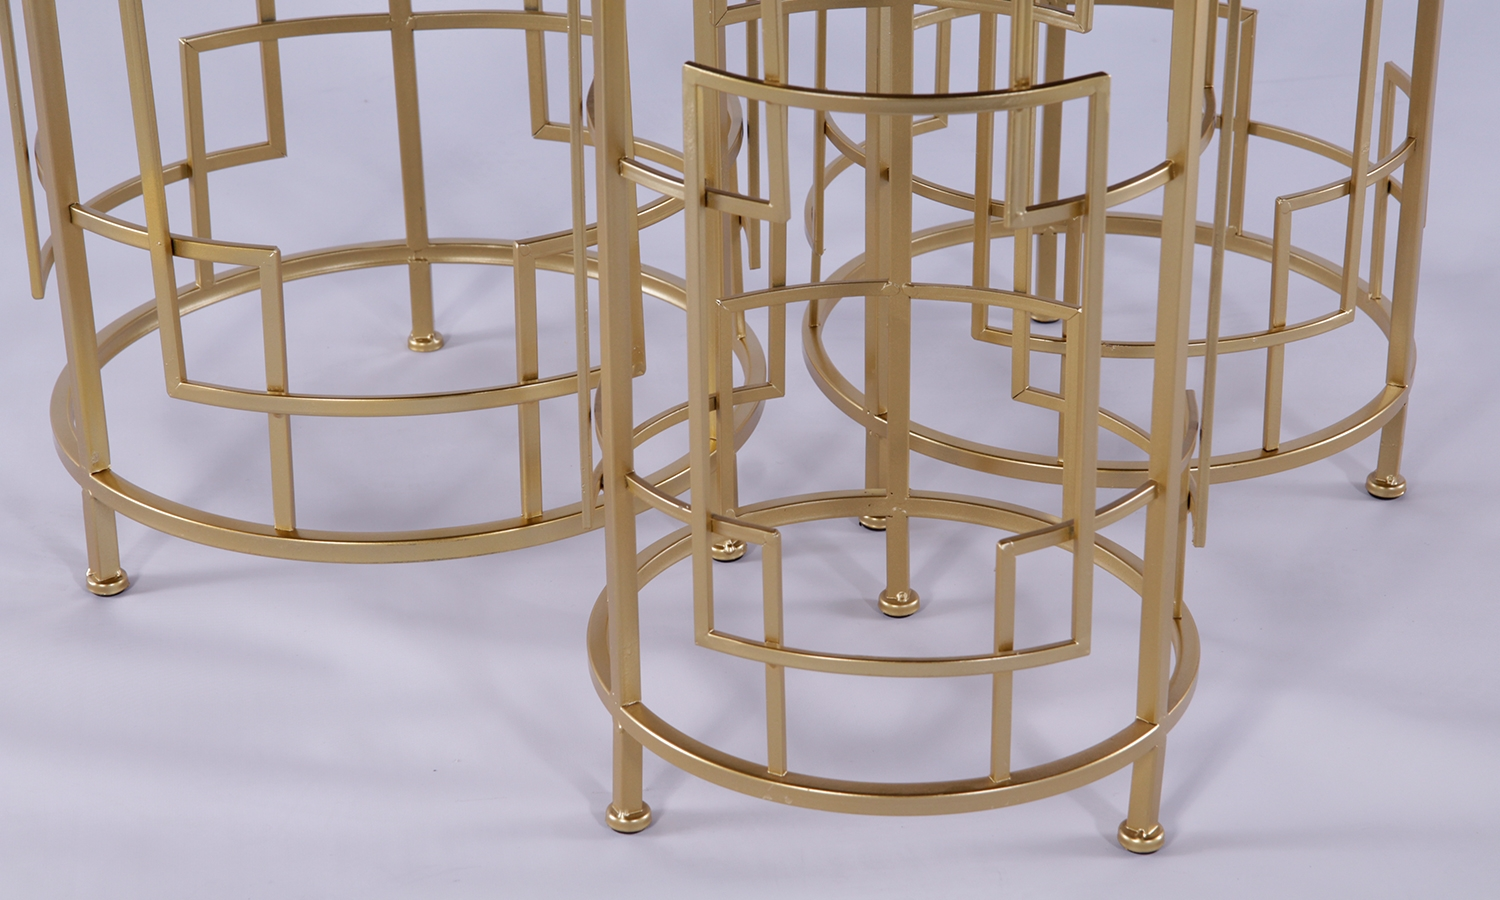 Urban Deco Gold Metal In Black Glass Nest of 3 Tables